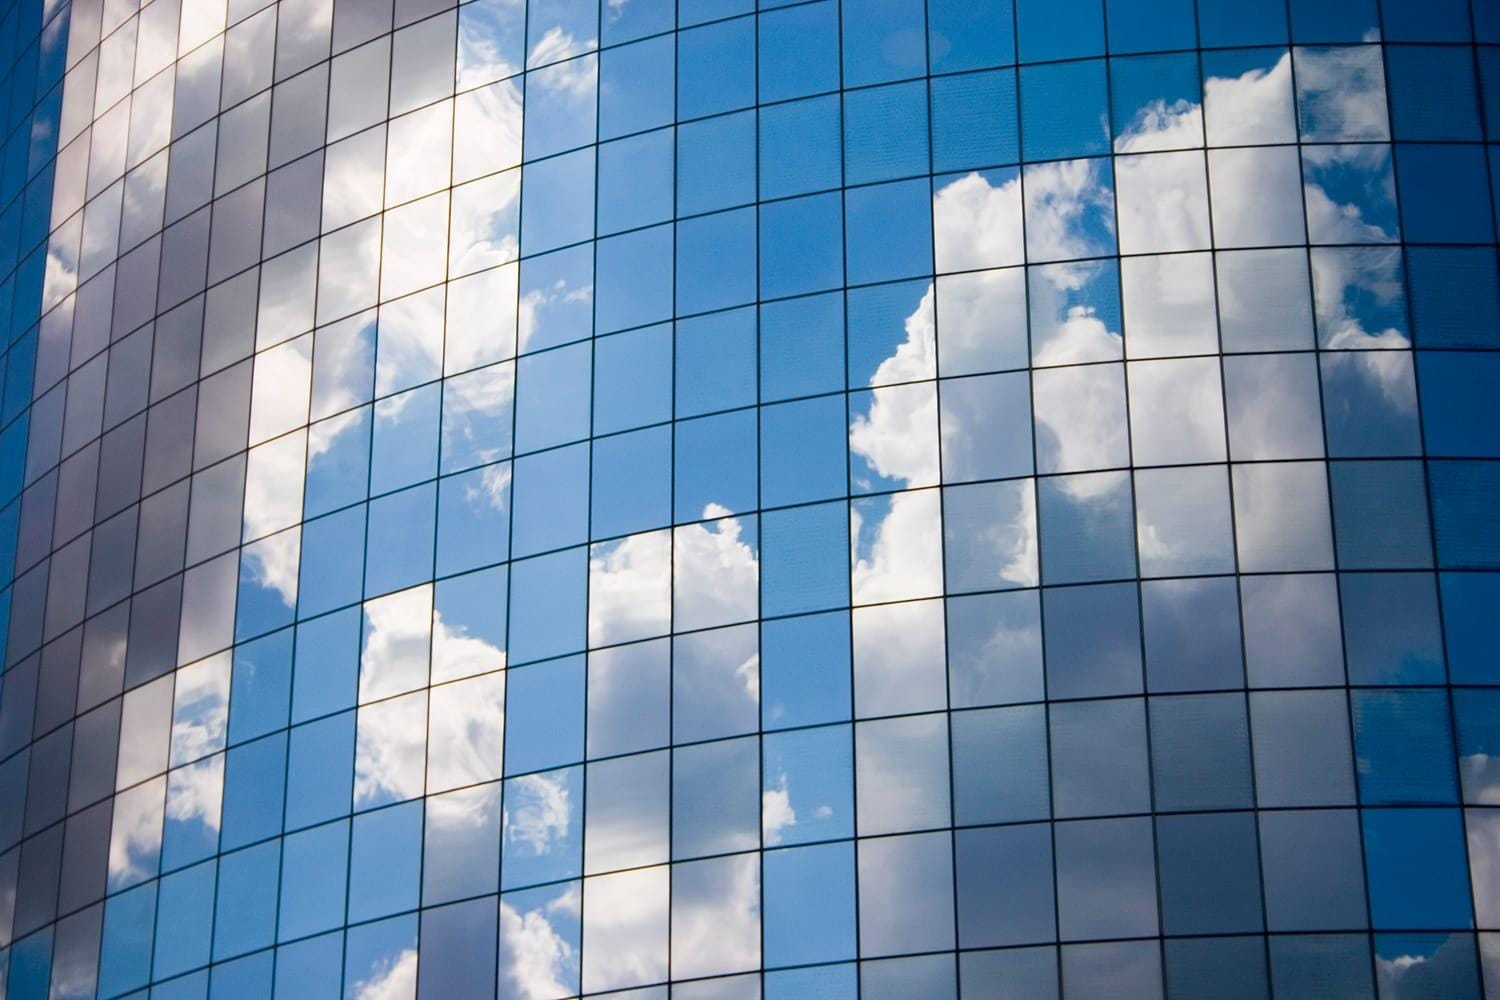 Clouds reflected on glass windows